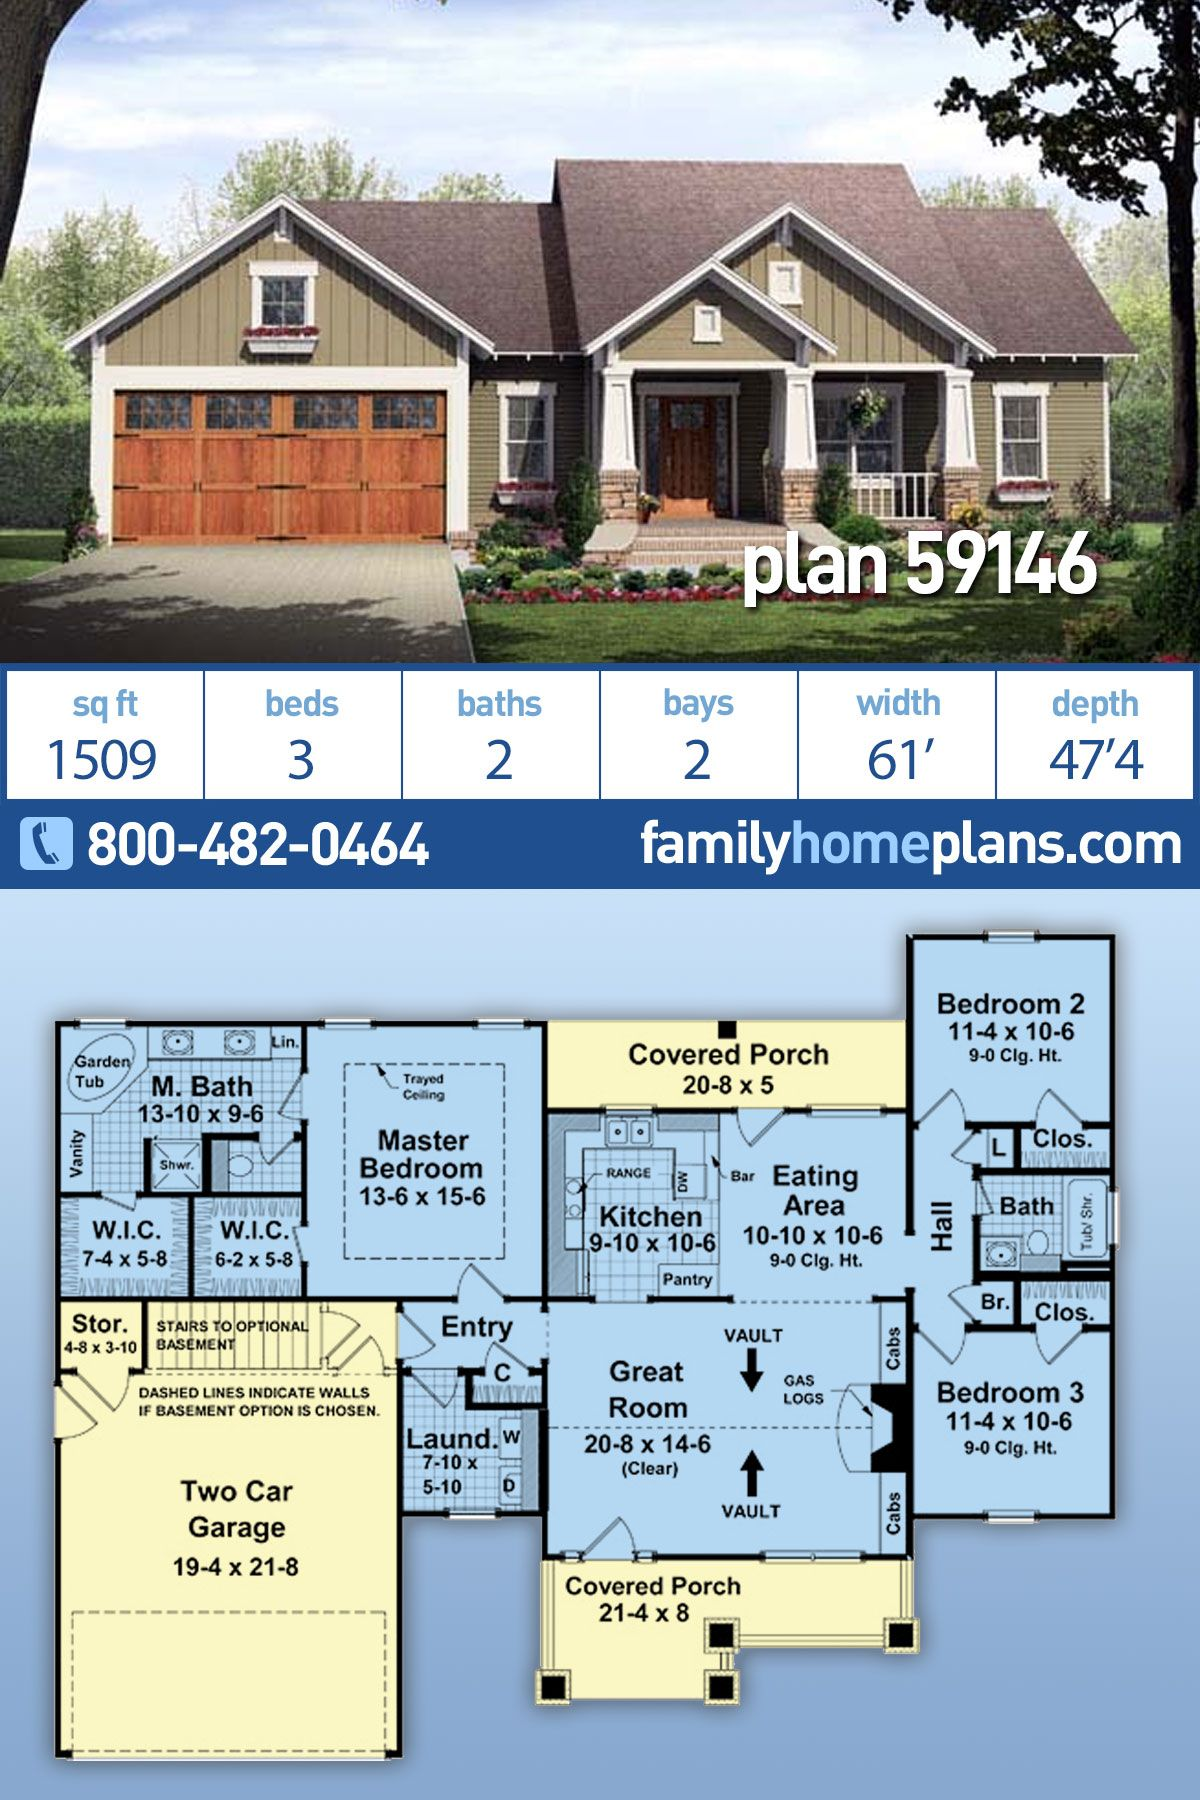 Craftsman Style House Plan 59146 With 3 Bed 2 Bath 2 Car